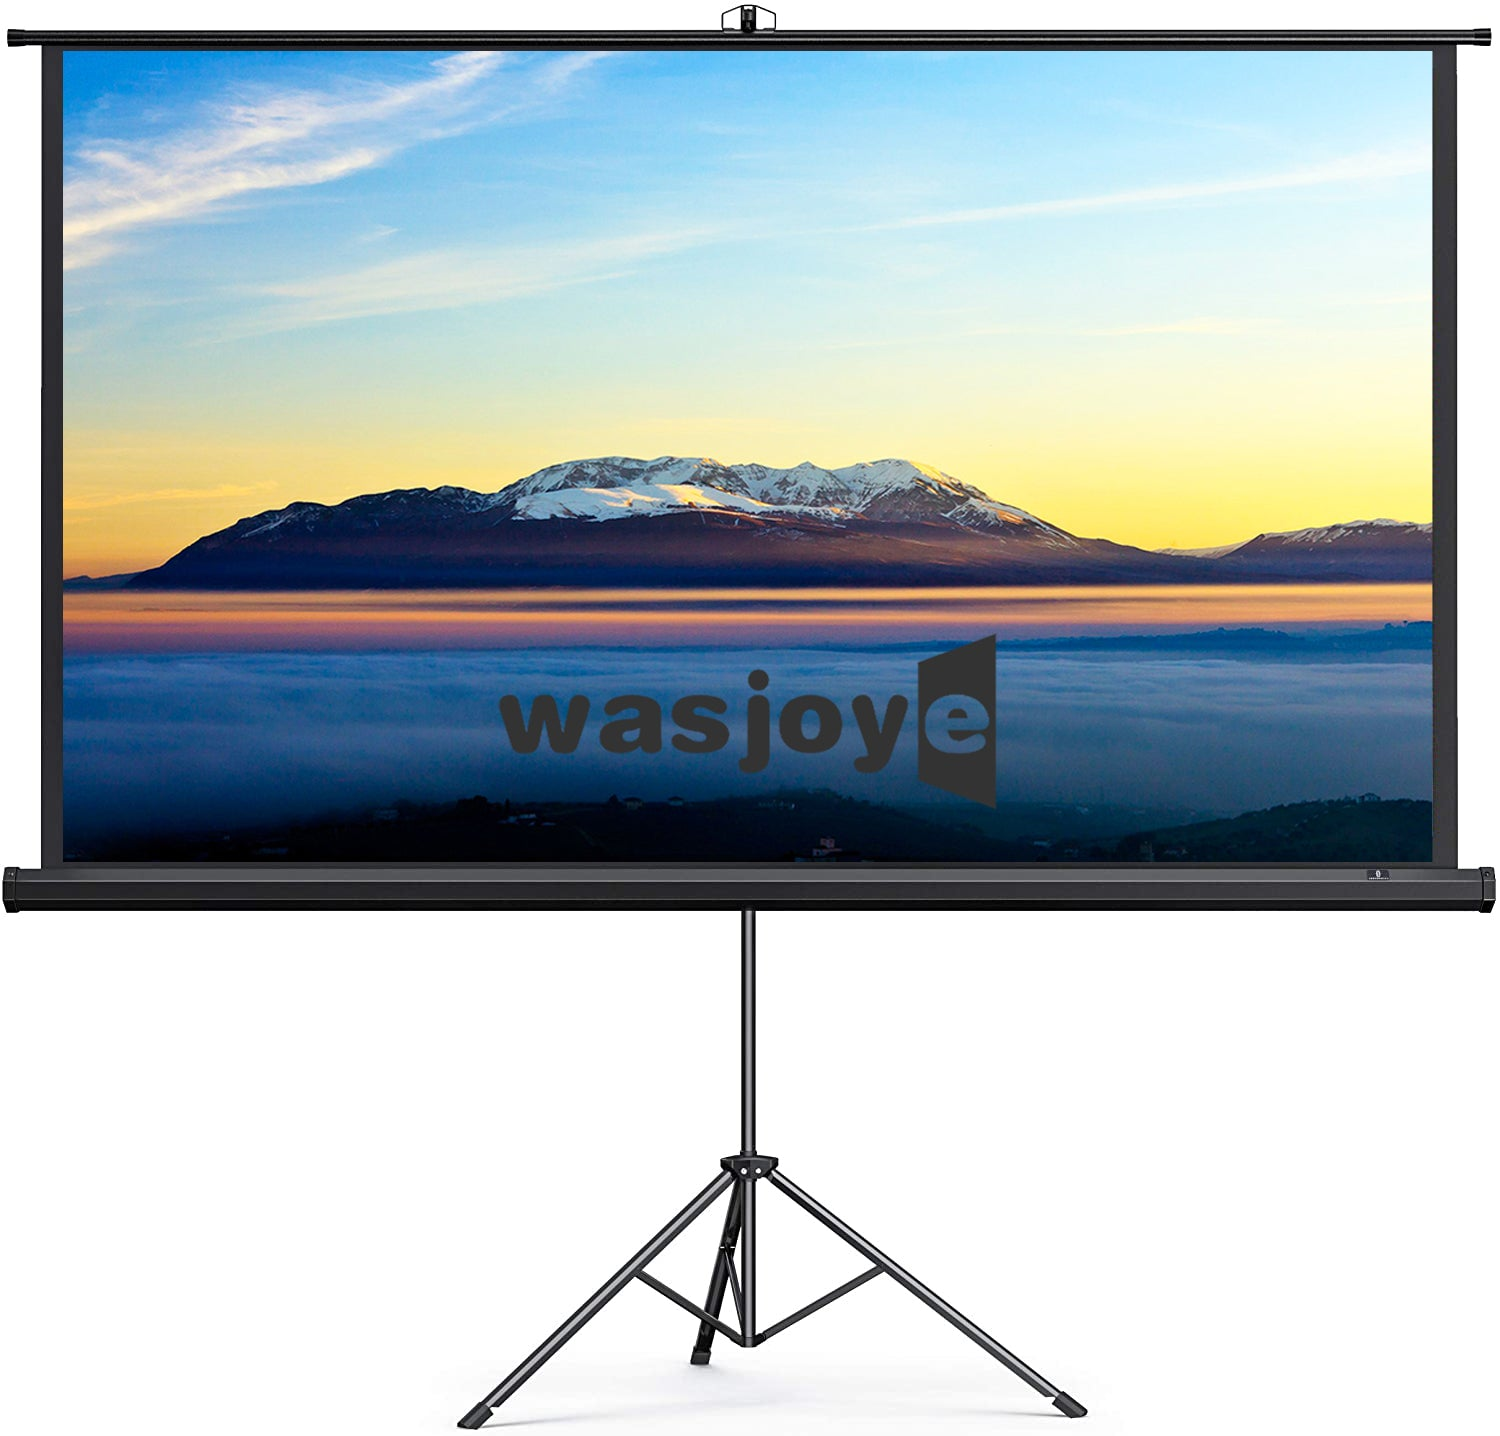 Projector Screen with Foldable Stand Tripod, Portable Video HD 70 inch Indoor Outdoor Movie Screen Wrinkle-Free Pull Up Adjustable Design for Home Cinema Projection